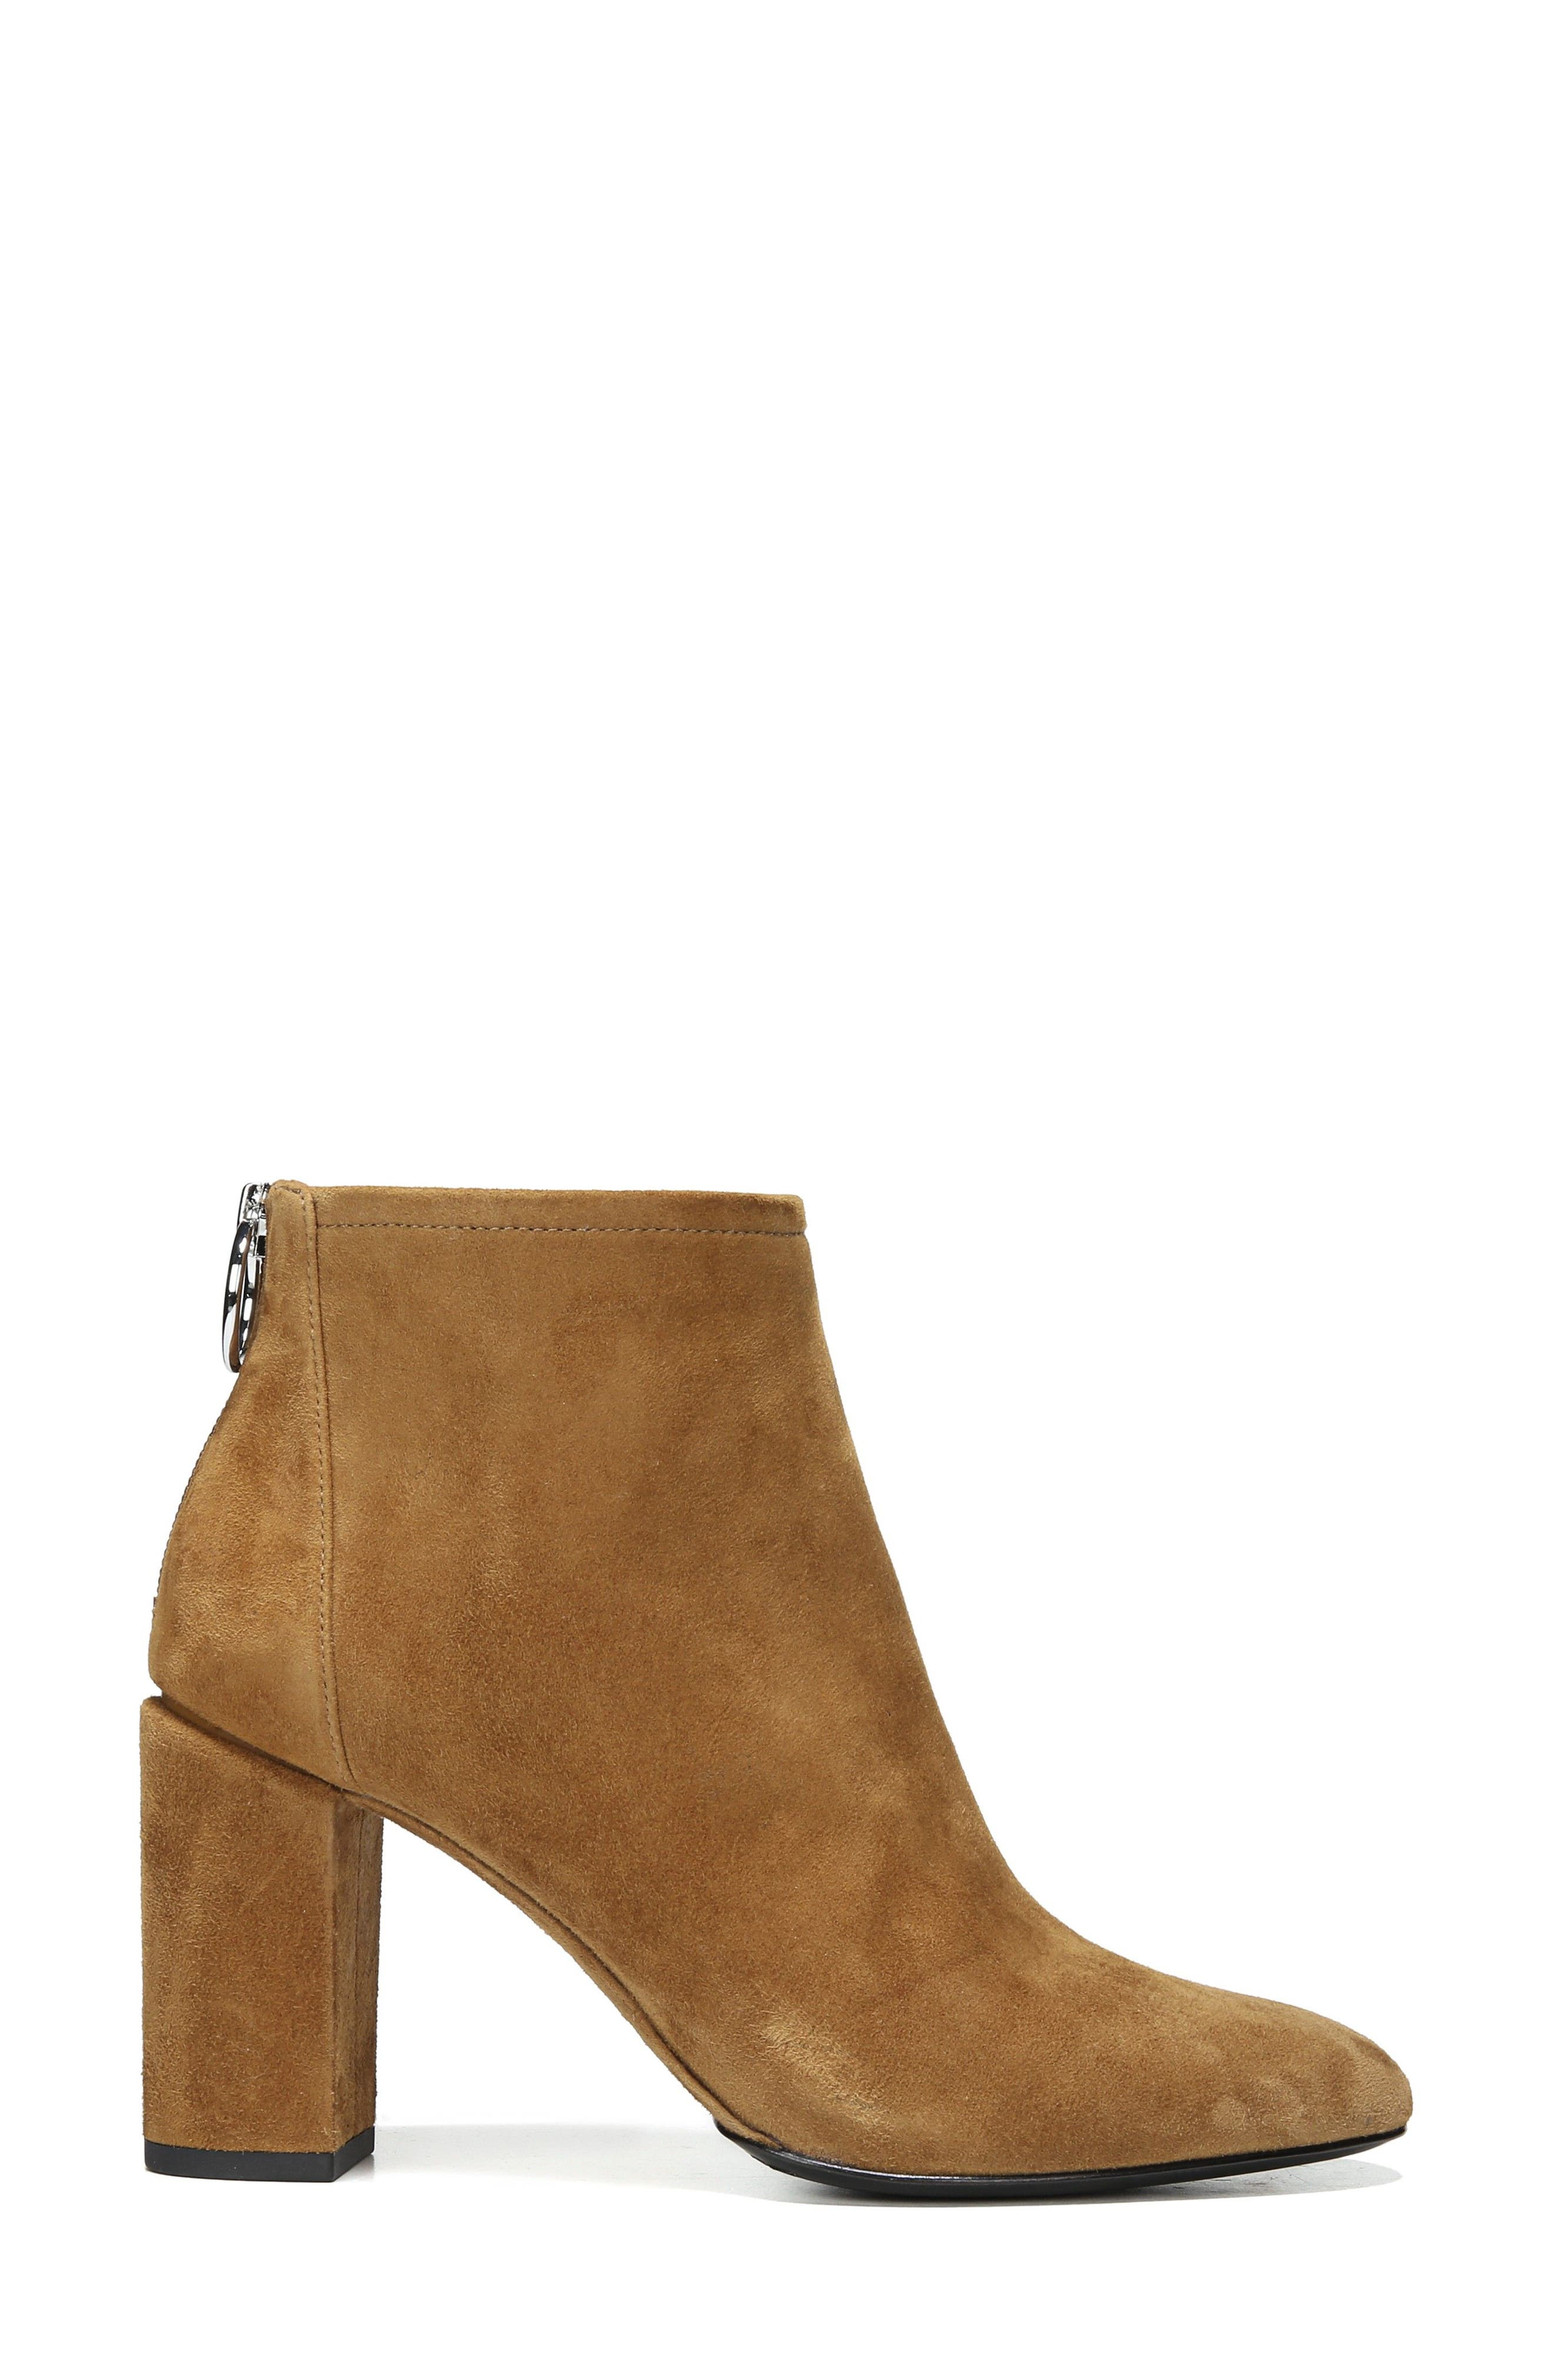 Nadia Bootie,                             Alternate thumbnail 3, color,                             Cuoio Suede